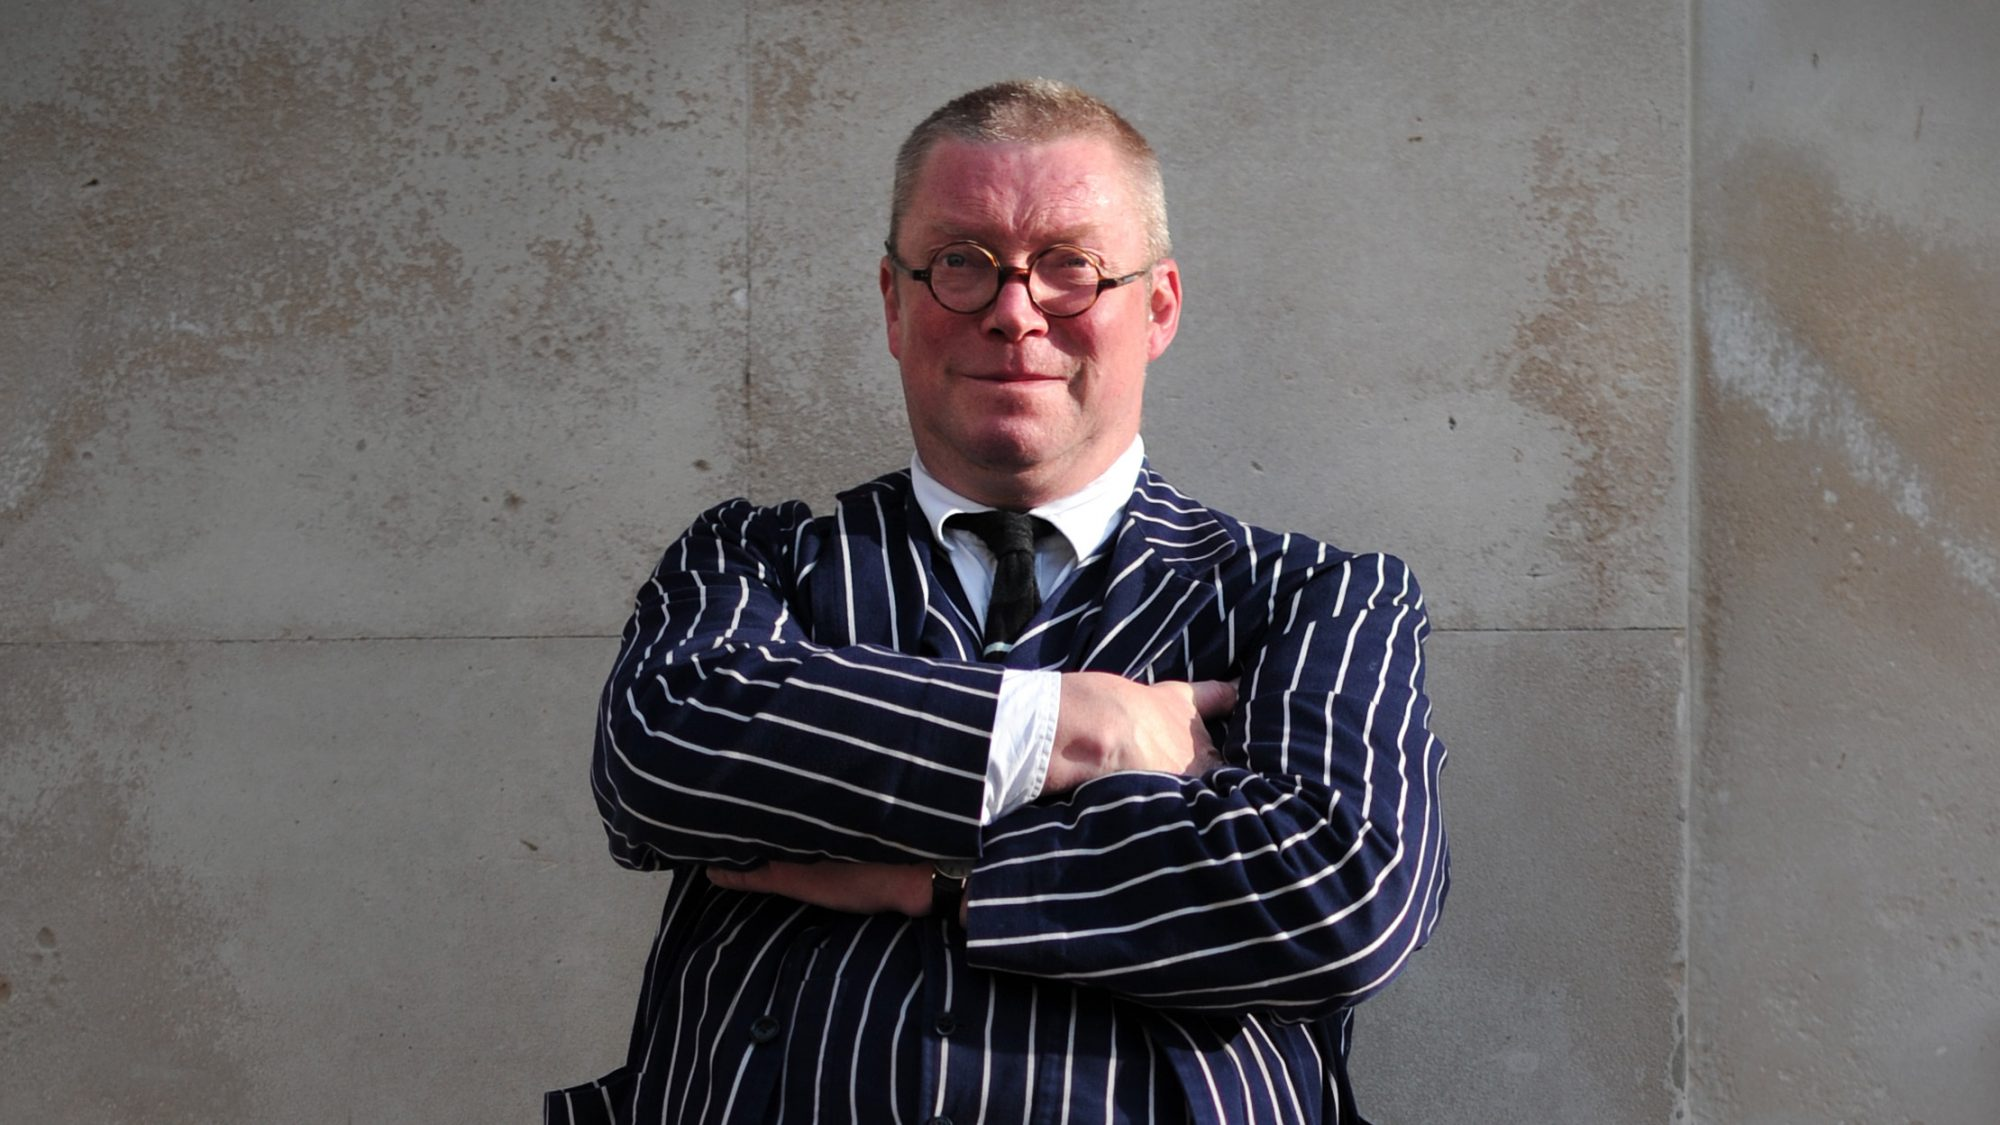 Fergus Henderson is Making Brain Burgers for a Cause